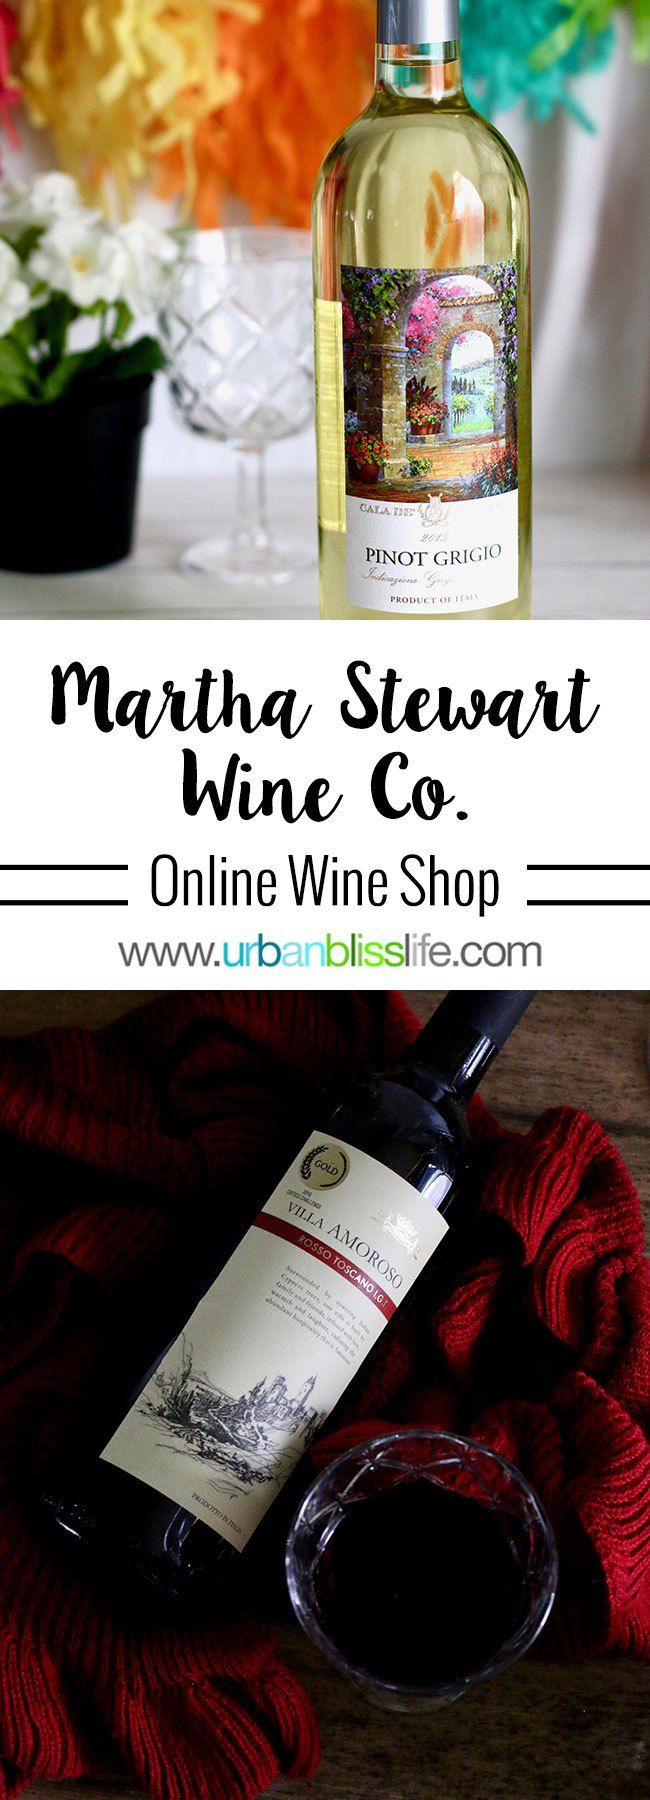 Martha Stewart Wine Co. offers affordable, high quality wines sold individually, in gift packs, and via wine club. Wine review on UrbanBlissLife.com. #wine #wineshop #winewednesday #wineblog #wineblogger #redwine #whitewine #winesoftheworld